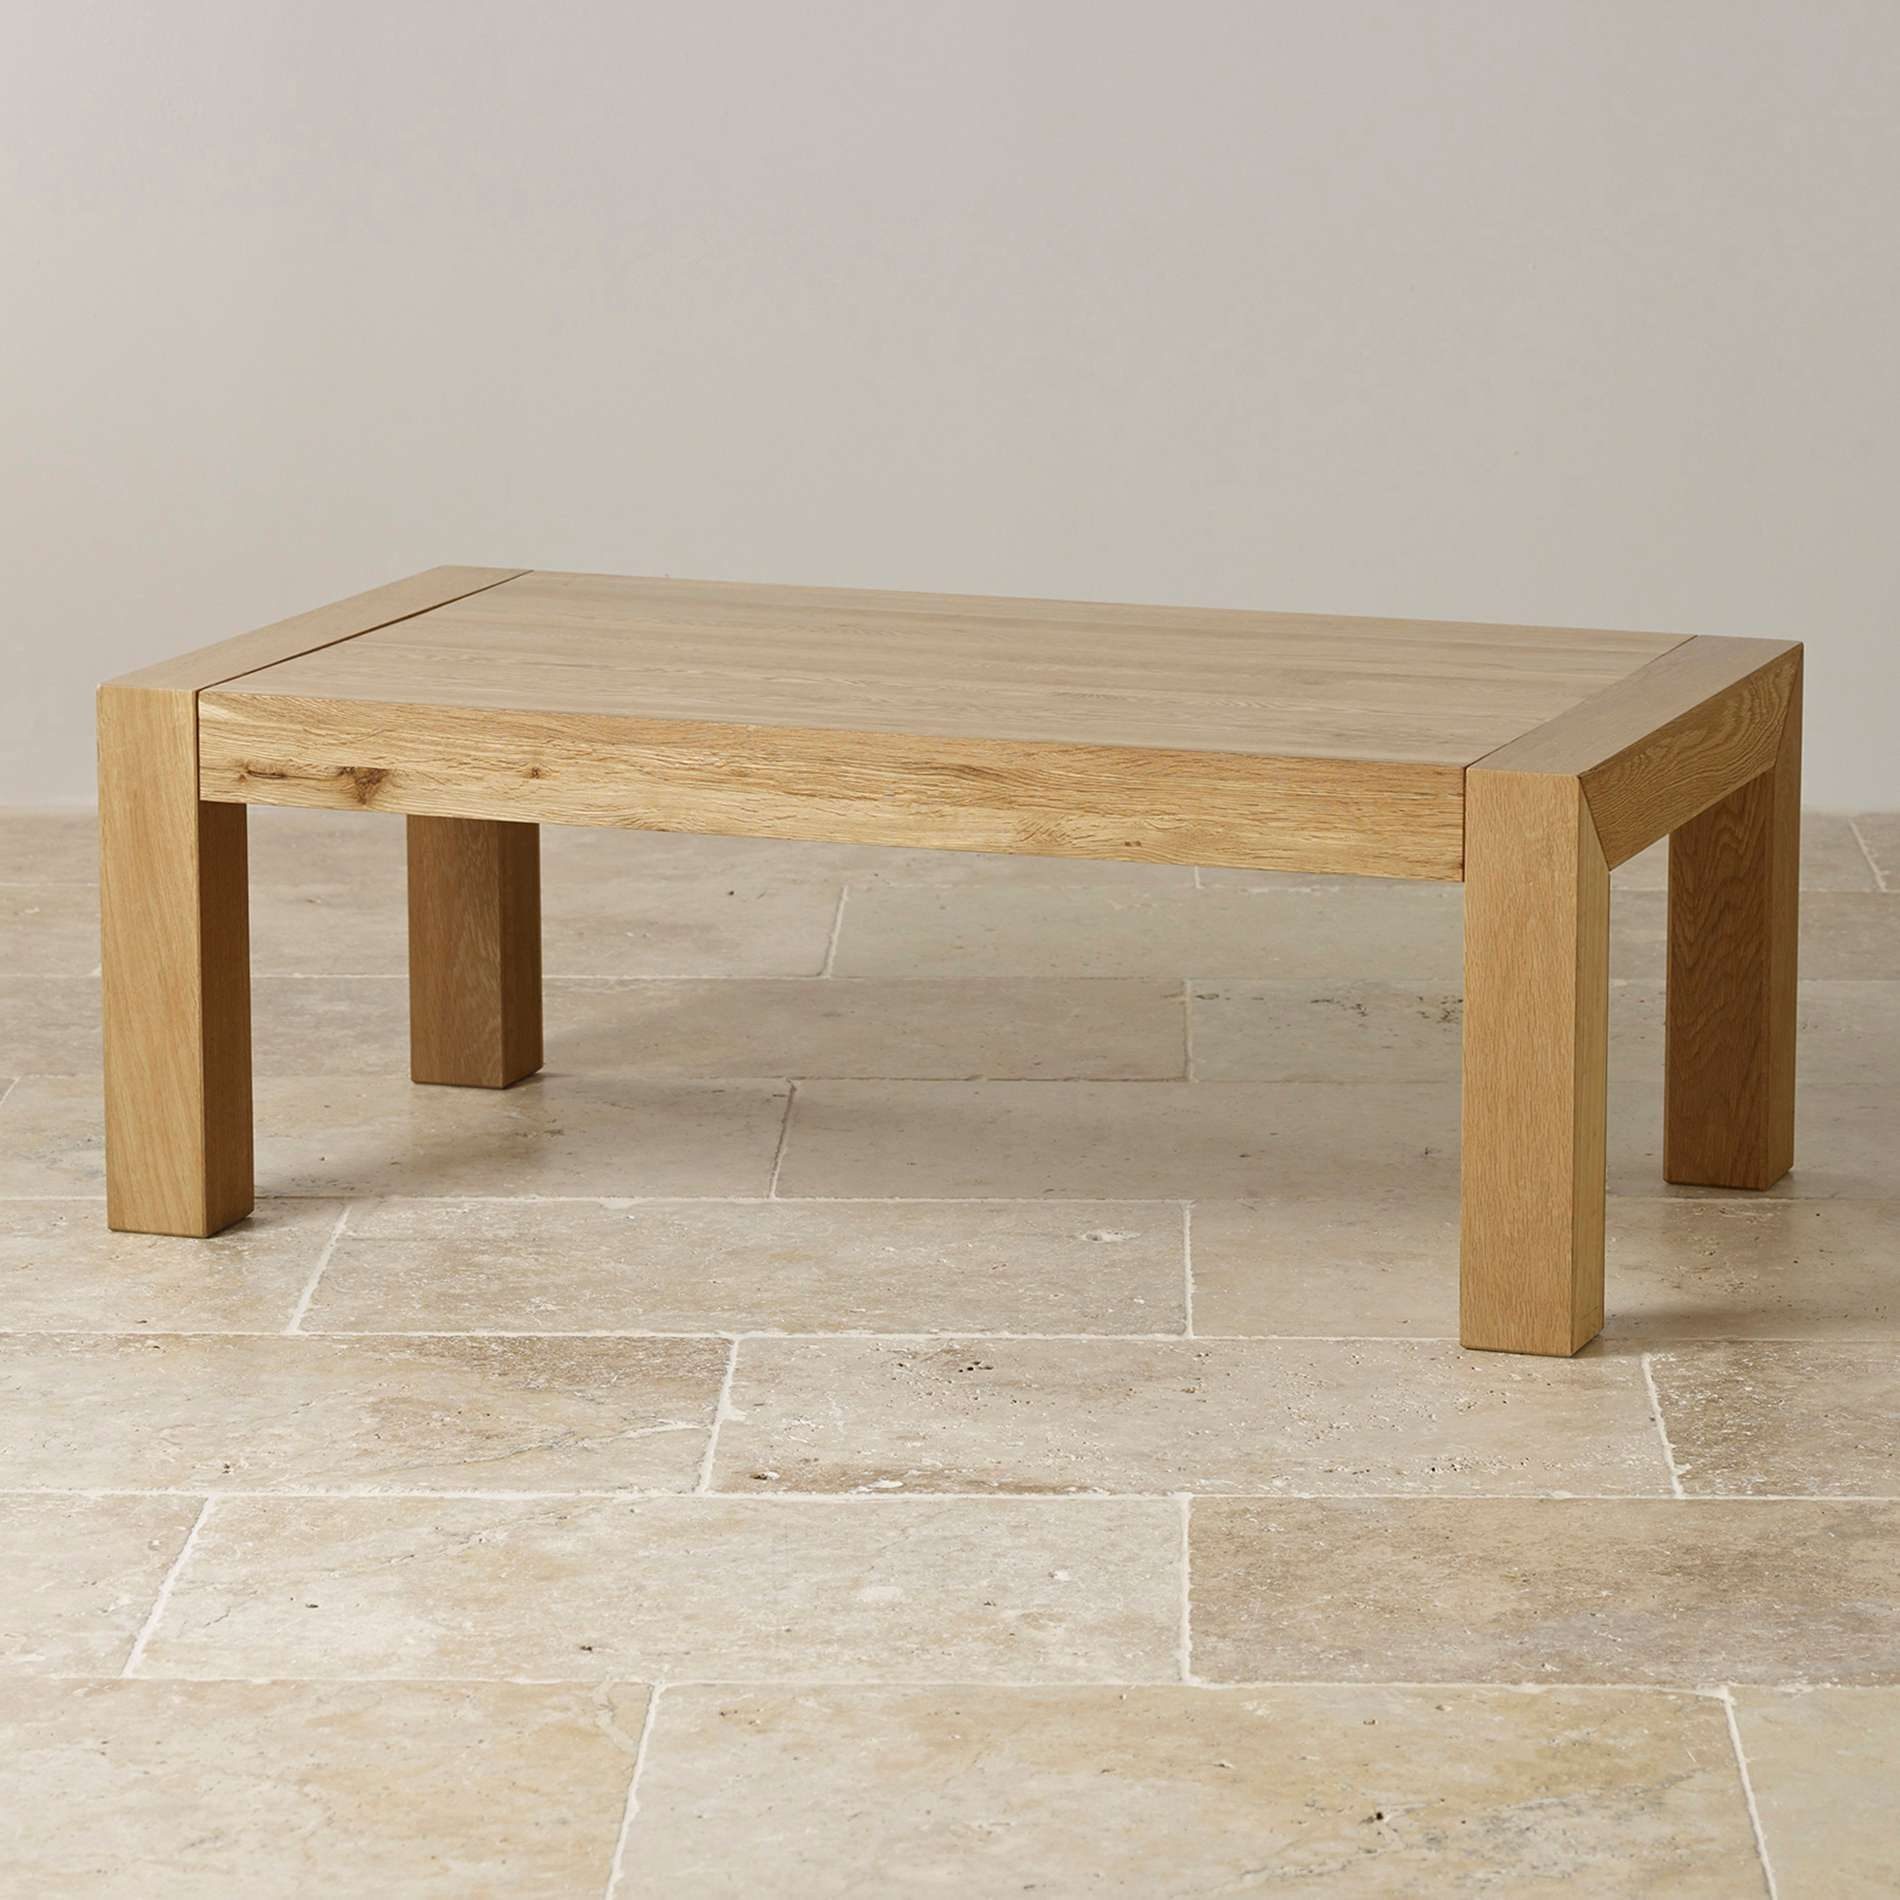 Fashionable Square Oak Coffee Tables In Coffee Table : Wonderful Solid Wood Coffee Table With Drawers (View 6 of 20)